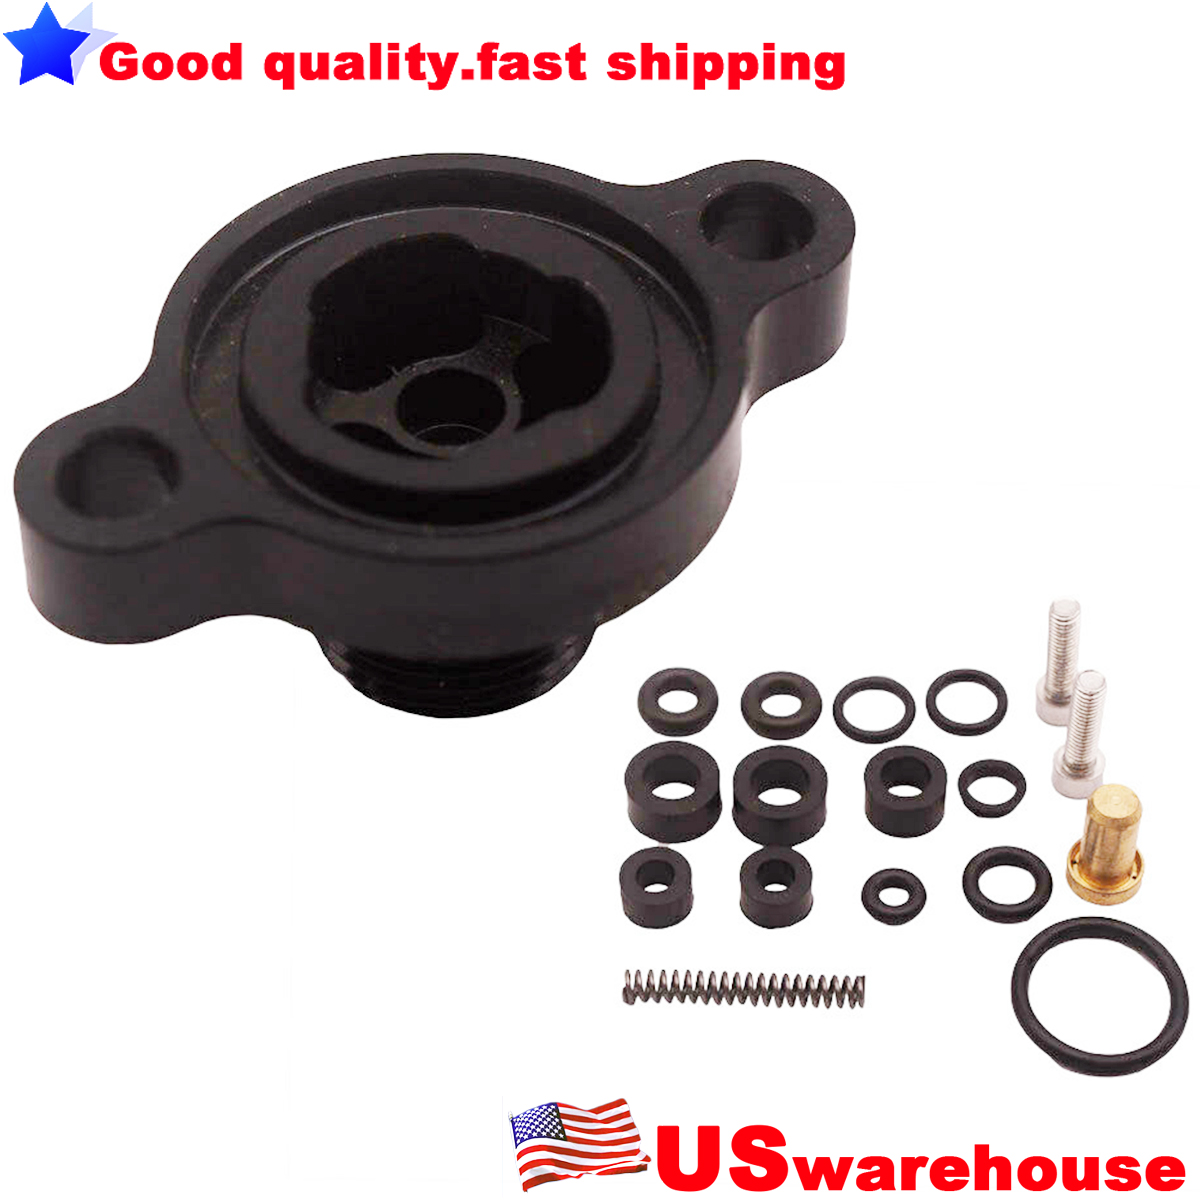 Fuel Relief Pressure Blue Spring Upgrade For 99-03 Ford 7.3L Powerstroke